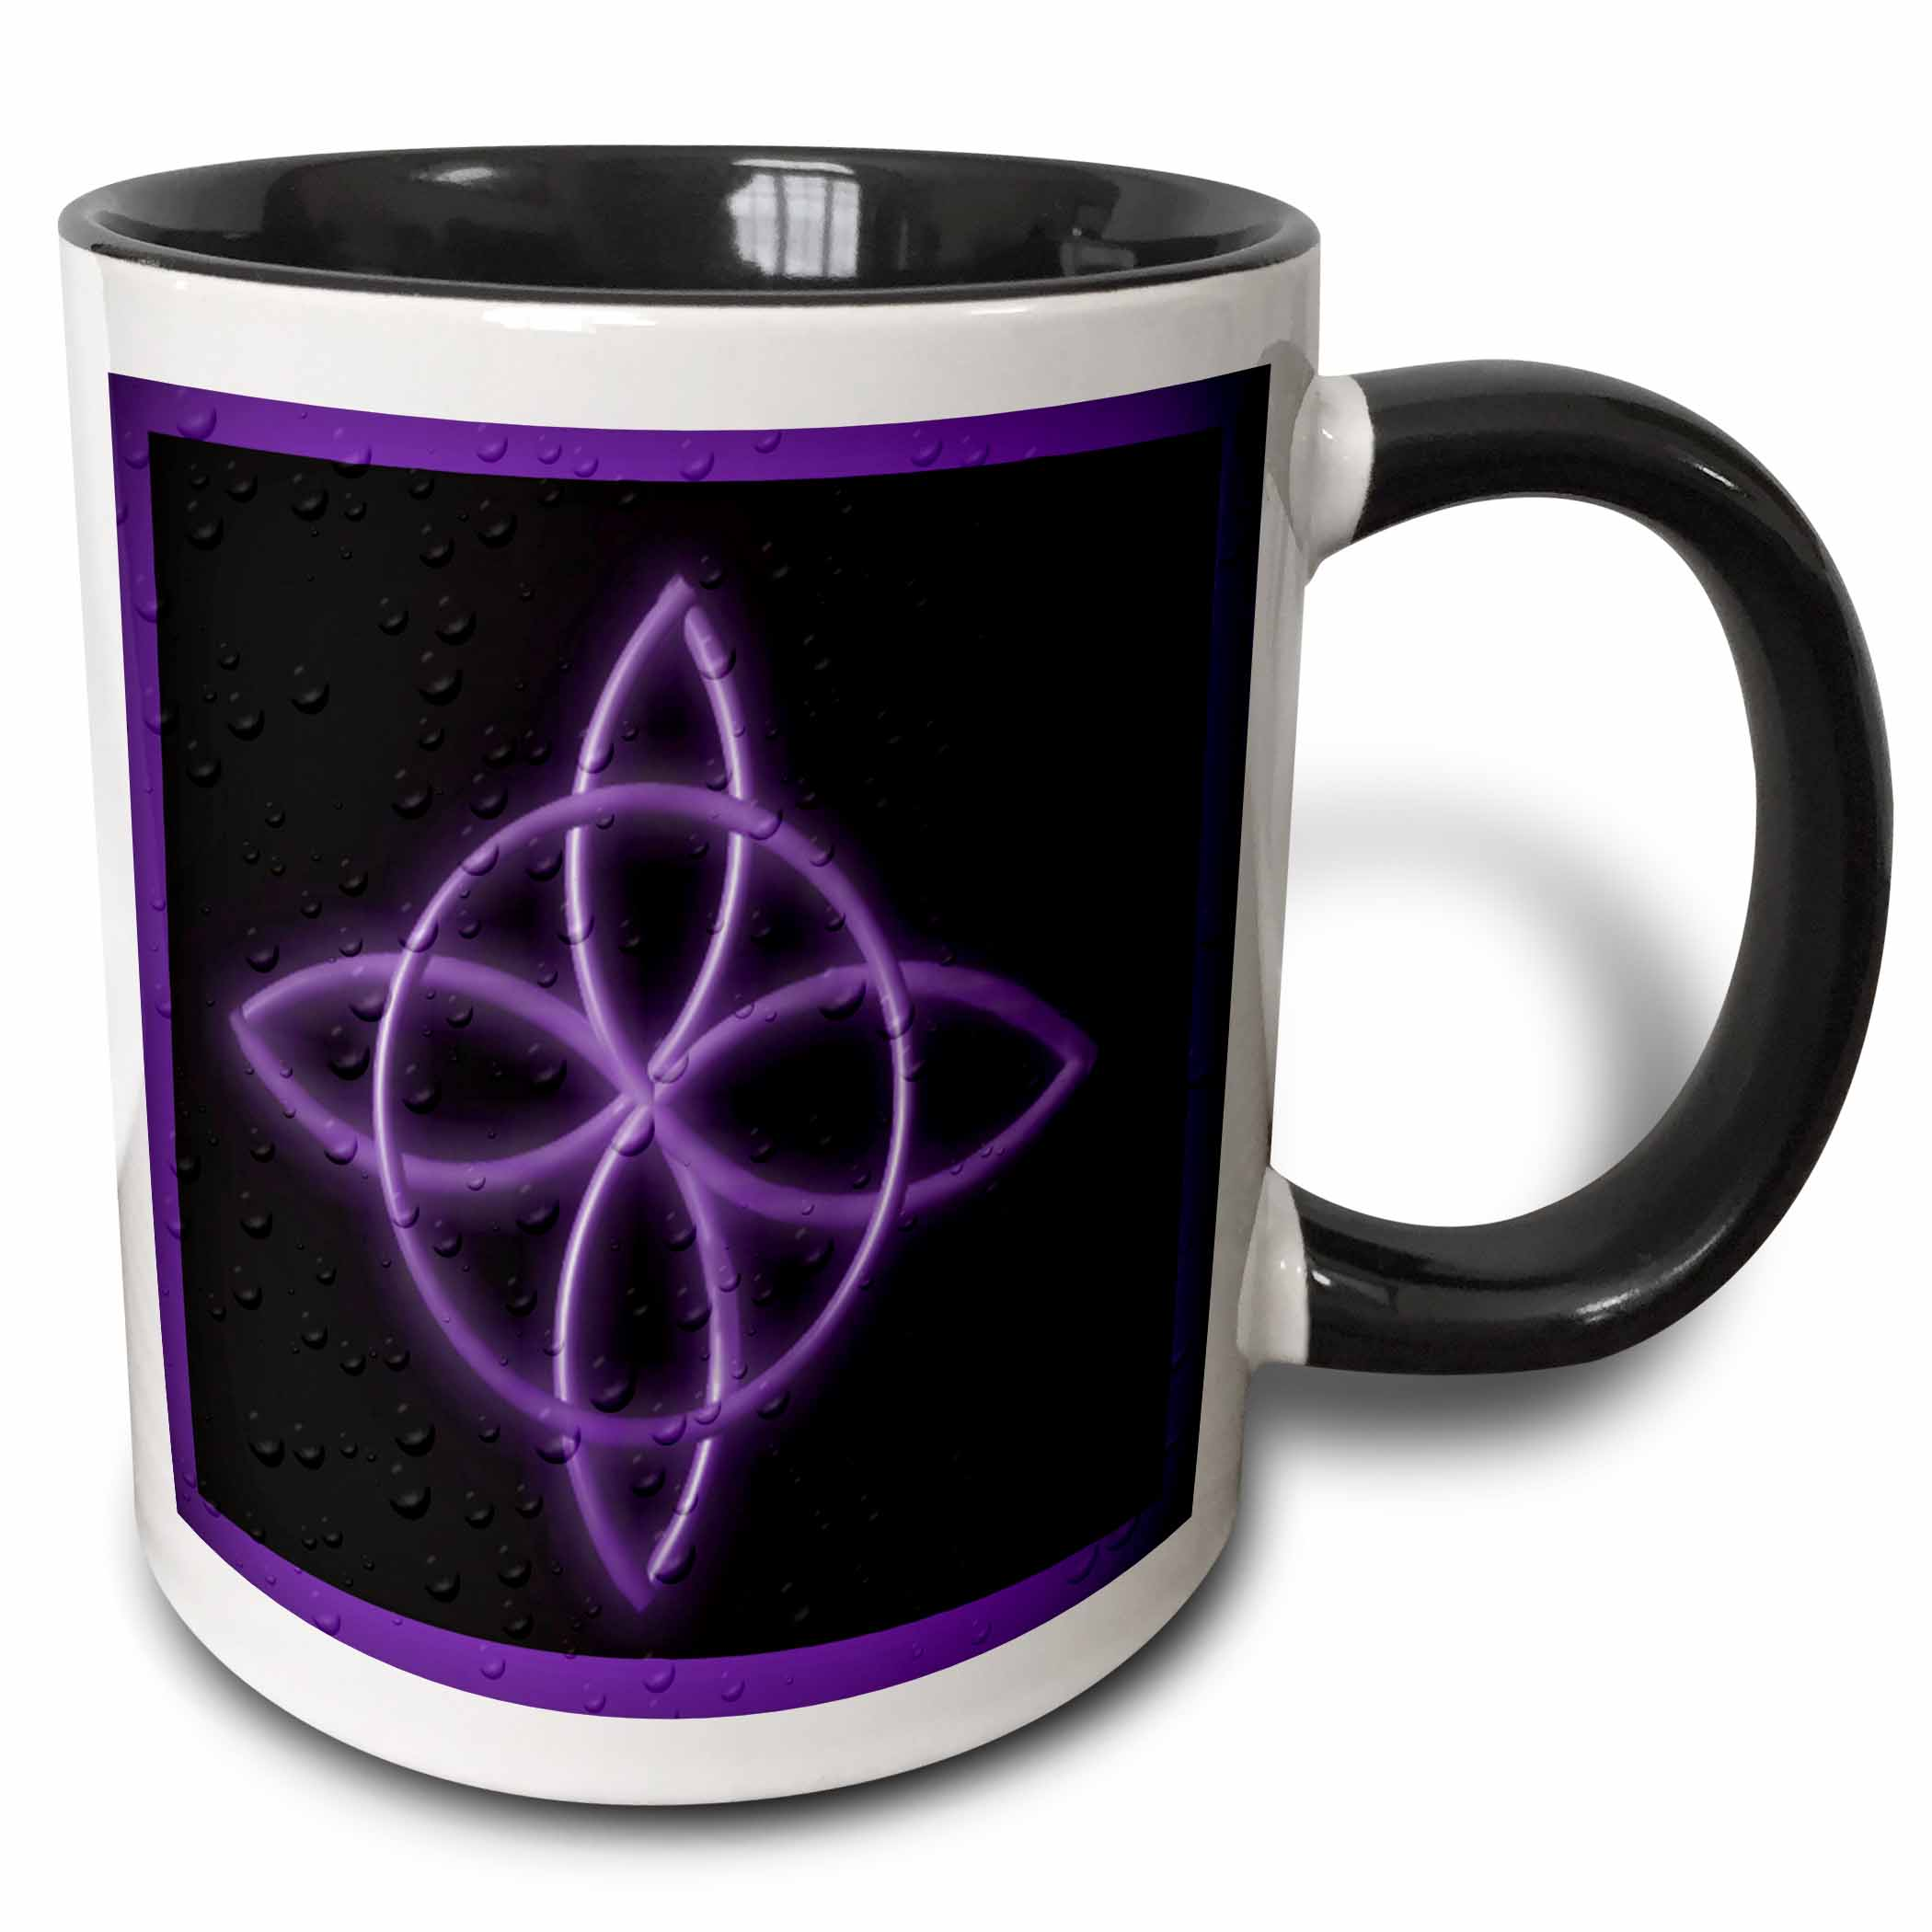 3dRose A Celtic design knot in purple, Two Tone Black Mug, 11oz